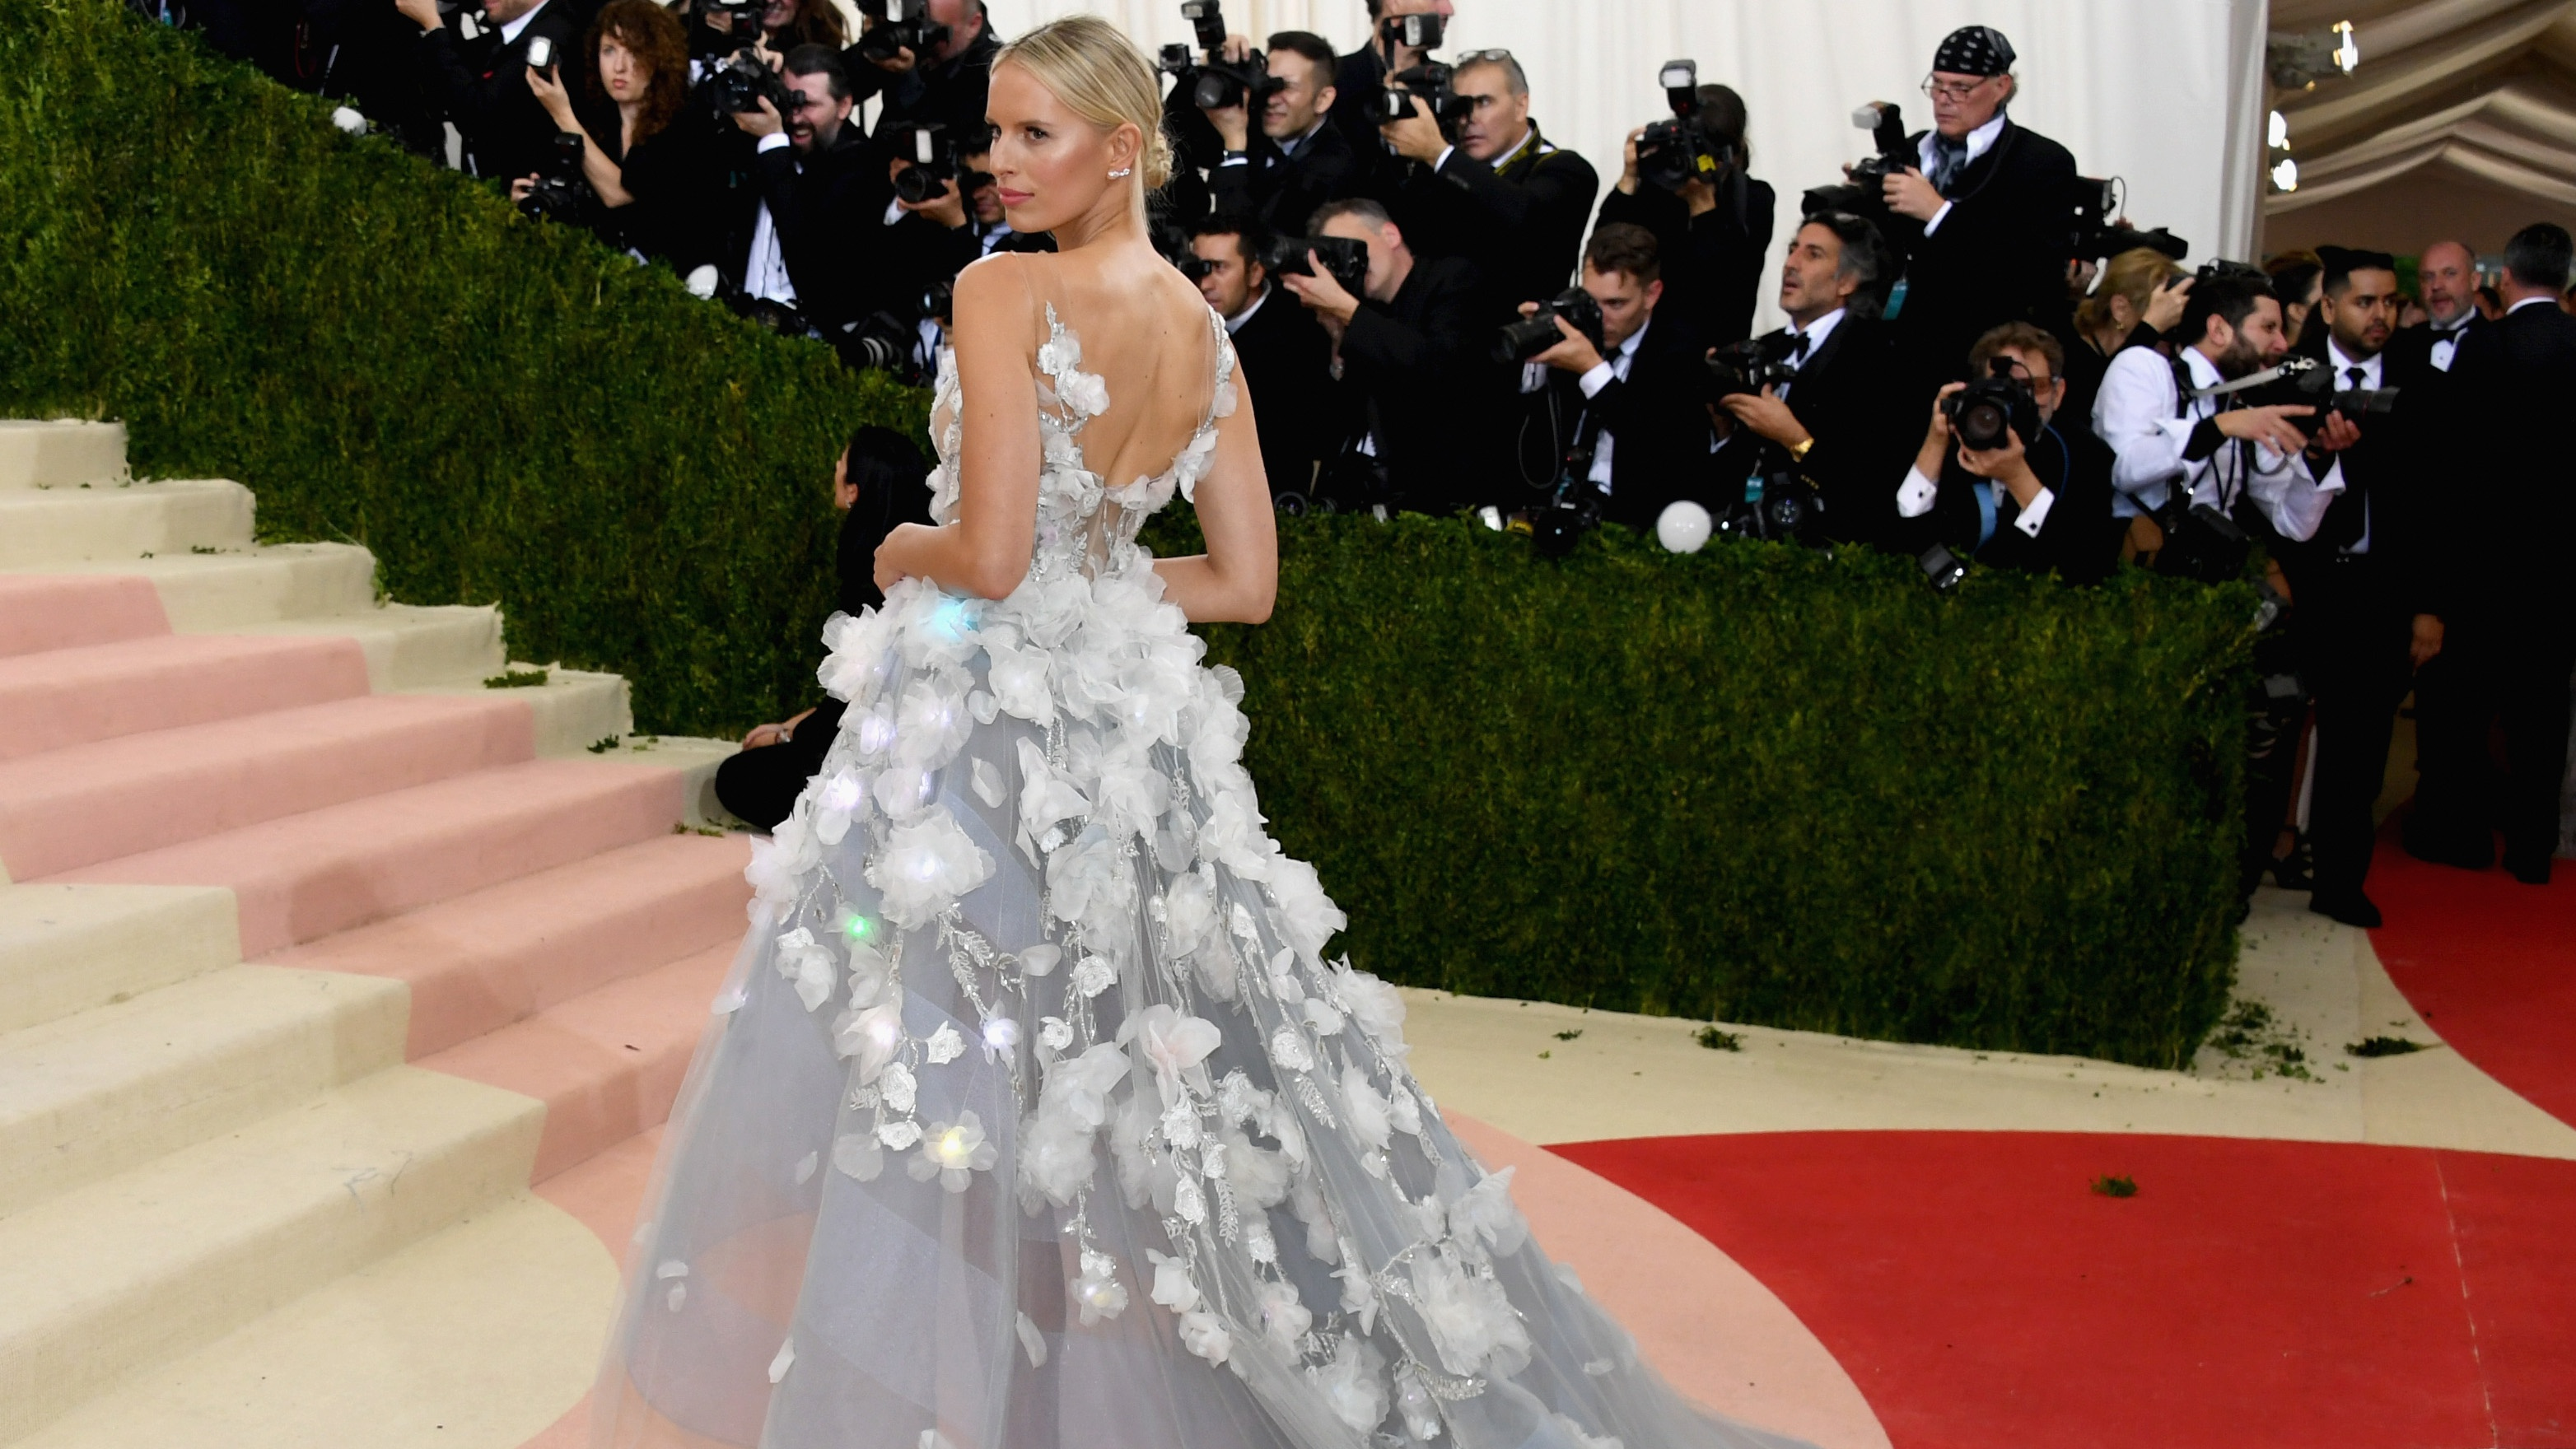 Karolina Kurkova attends the 'Manus x Machina: Fashion In An Age Of Technology' Costume Institute Gala at Metropolitan Museum of Art on May 2, 2016 in New York City. (Photo by Larry Busacca/Getty Images)